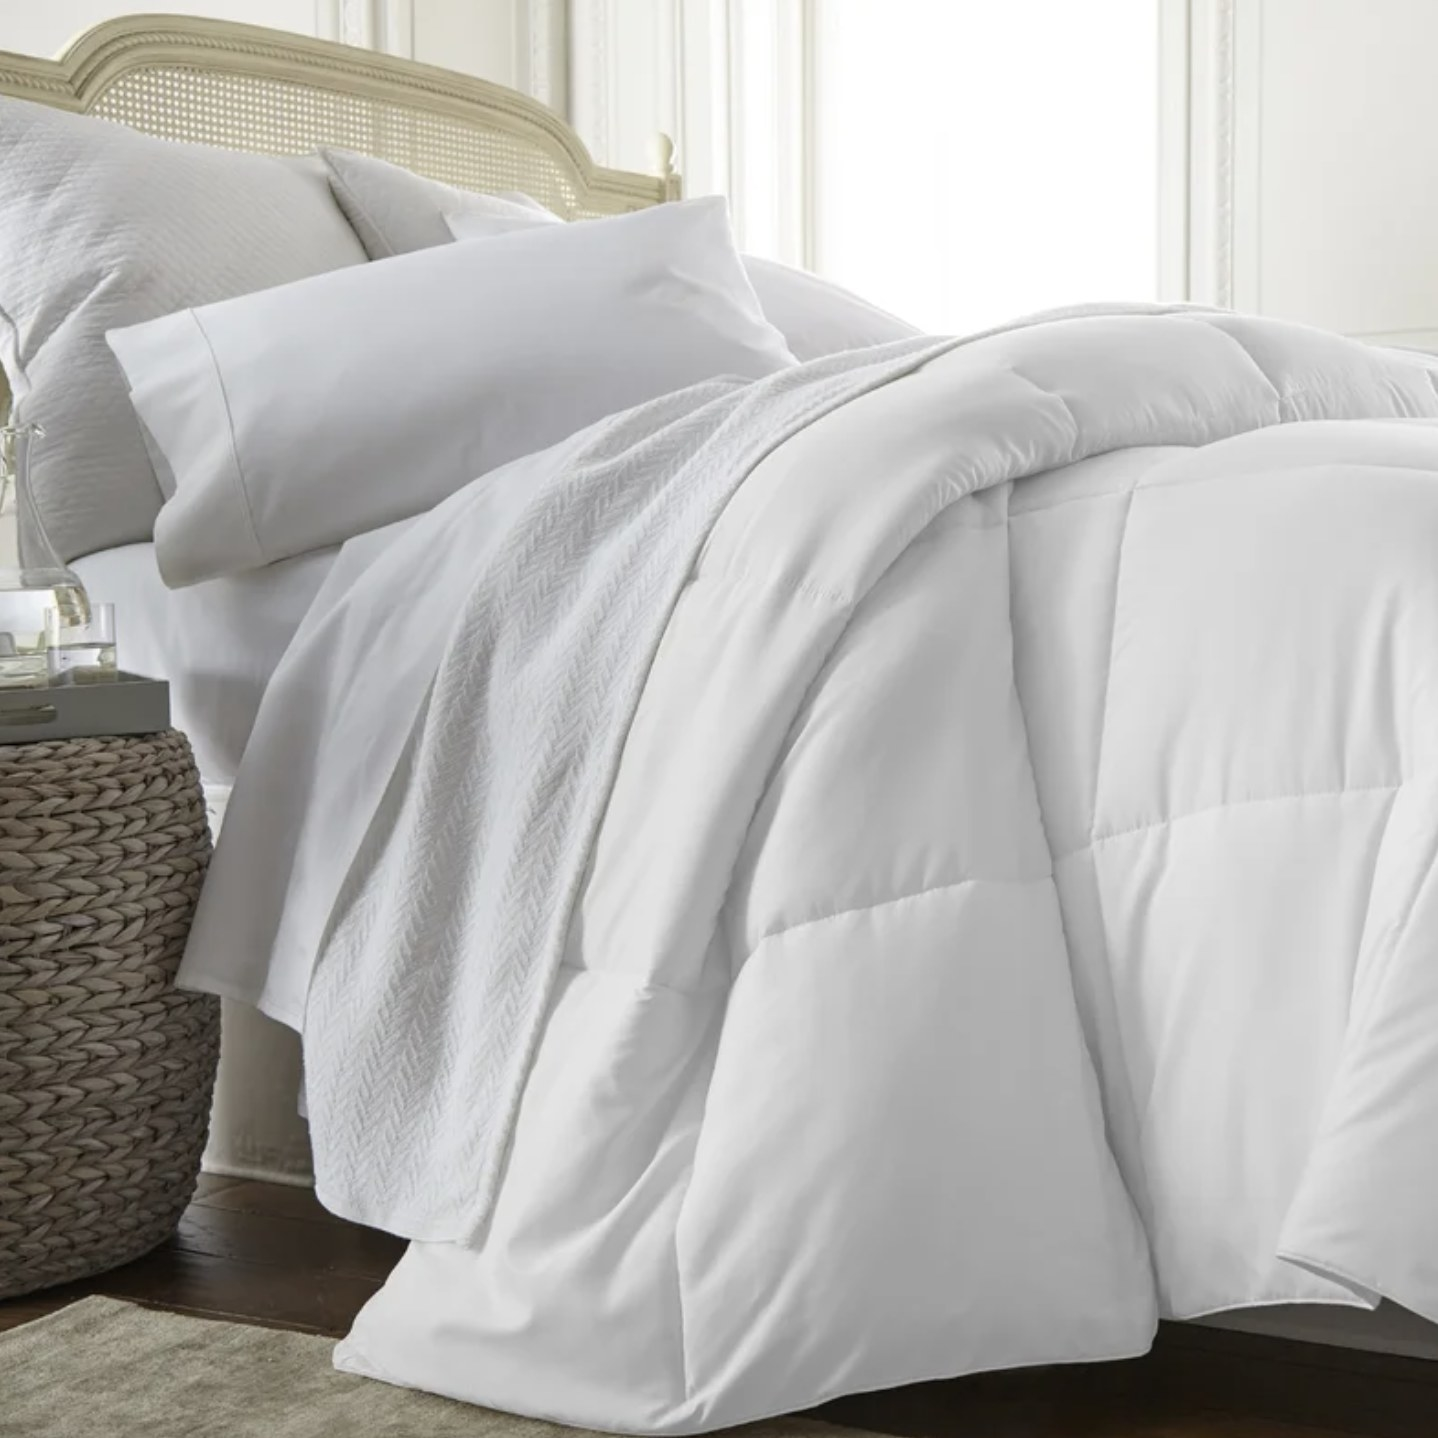 The white comforter set on a bed